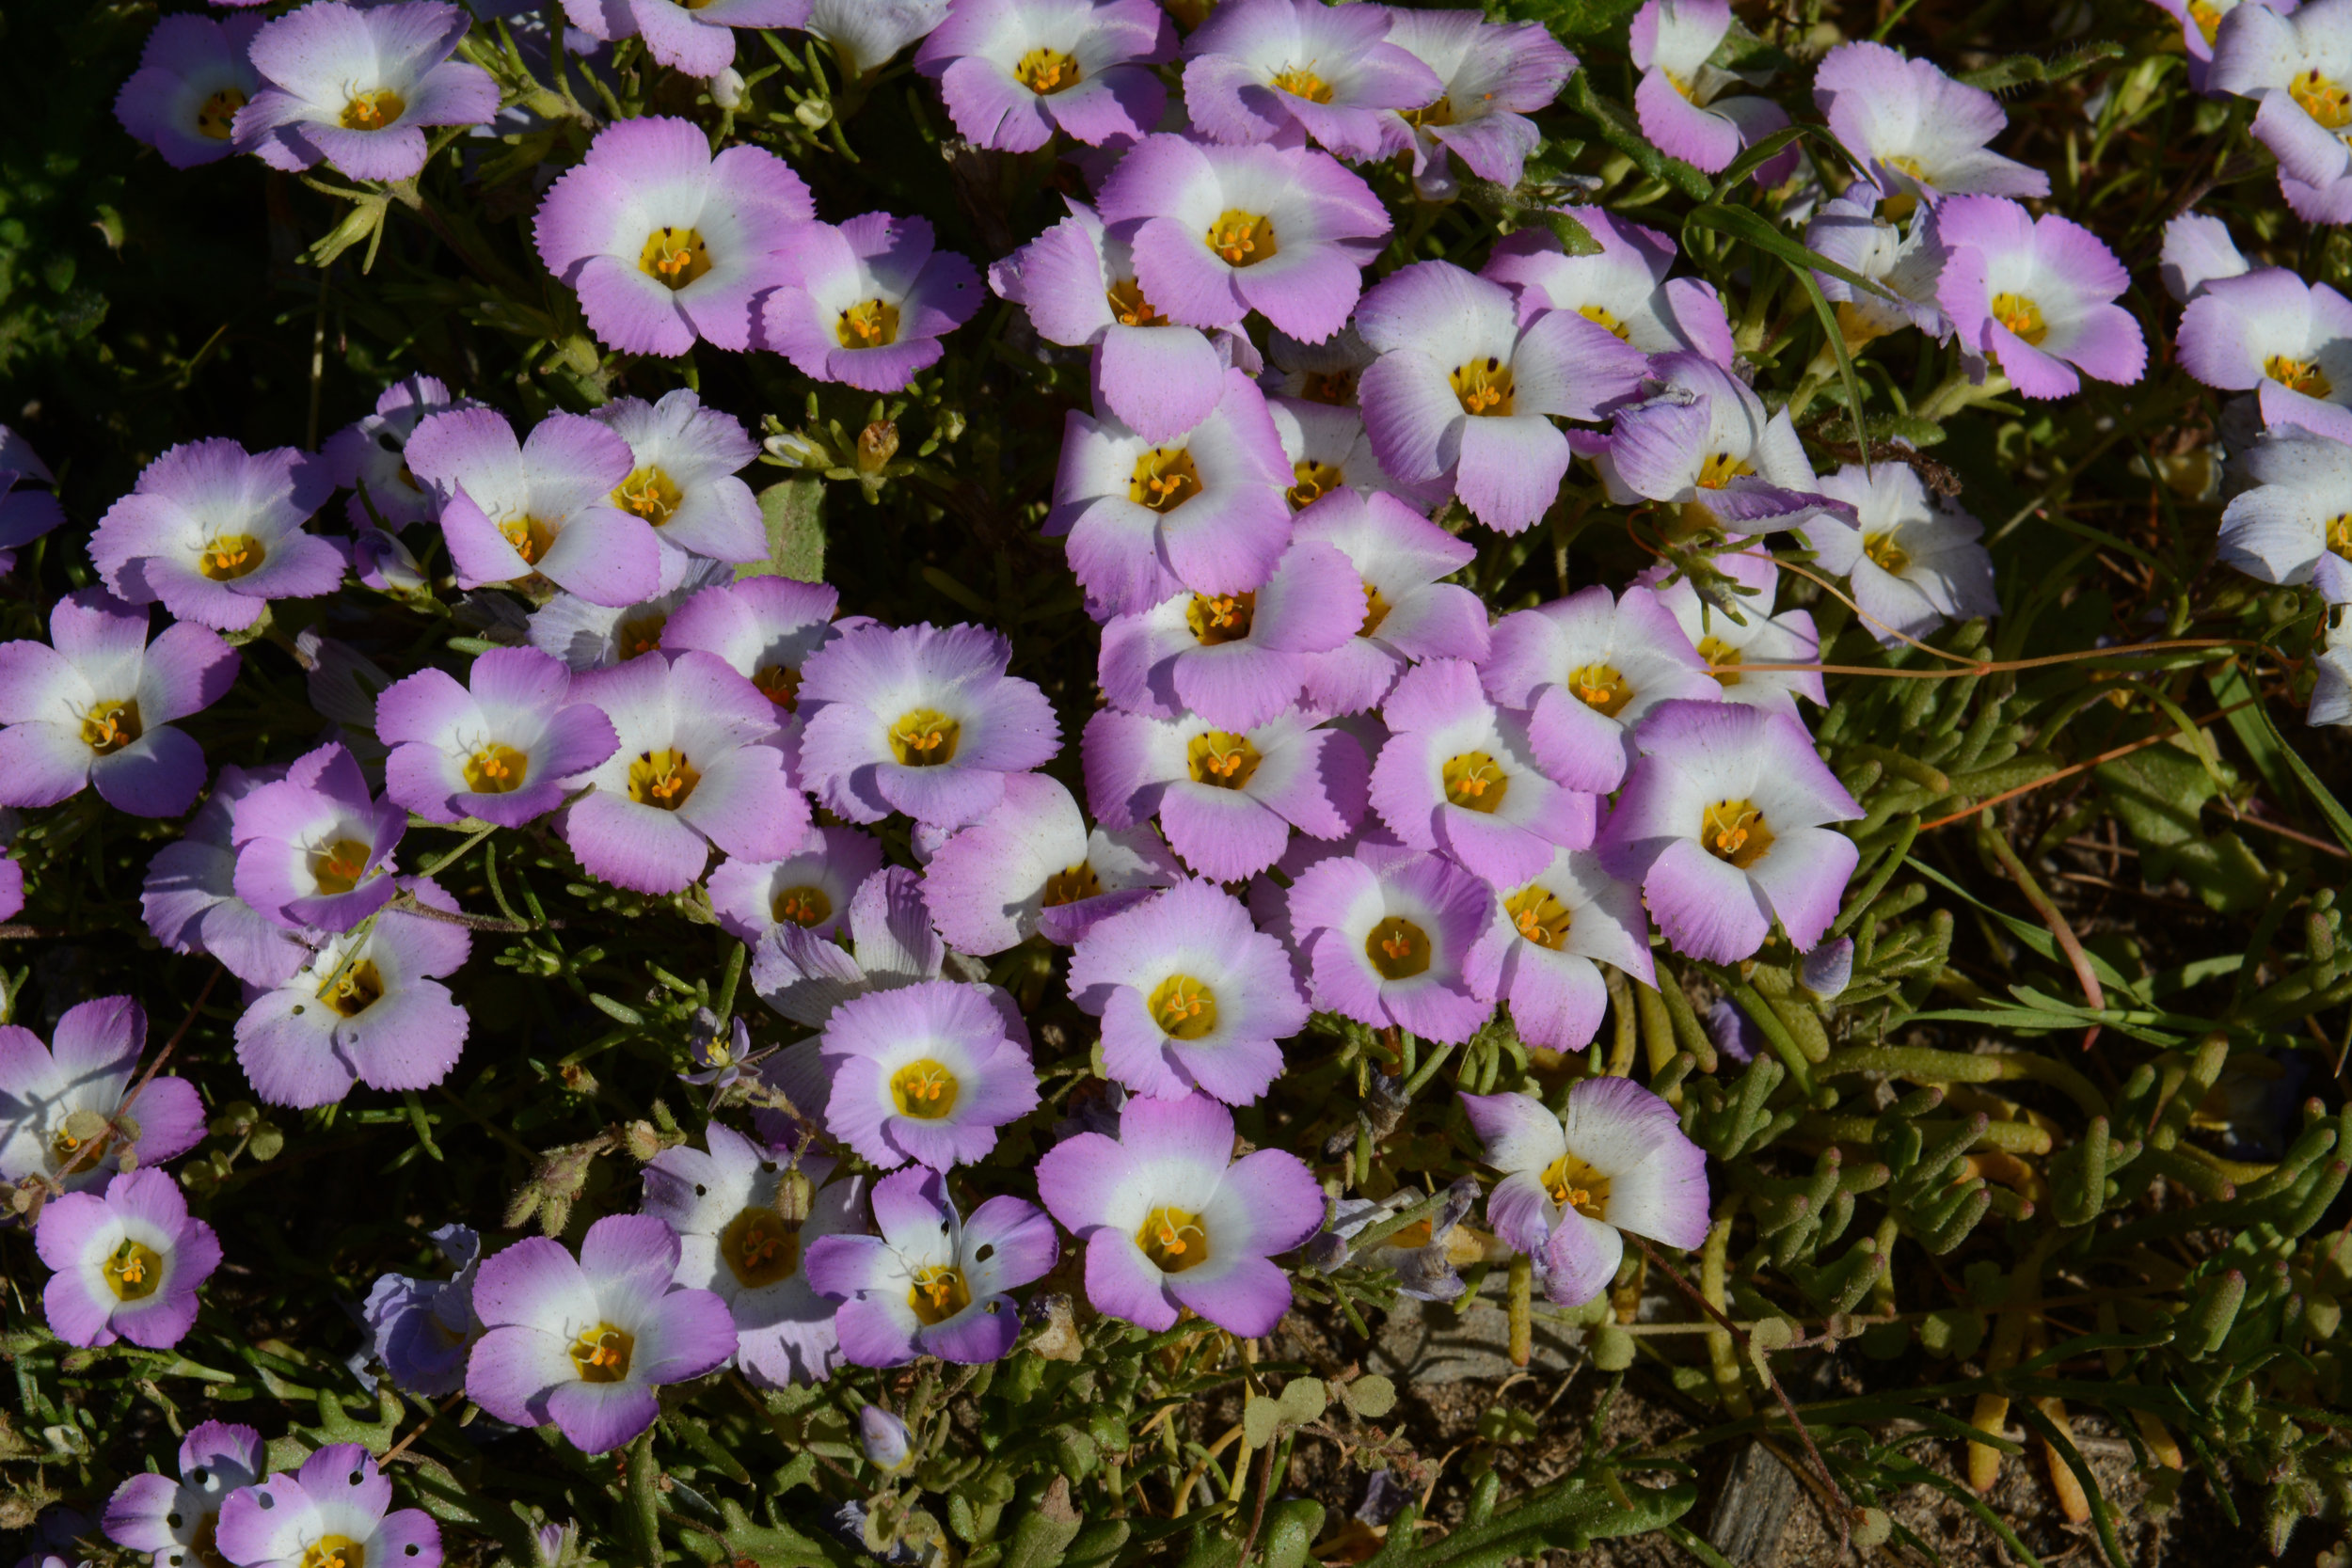 Linanthus dianthiflorus on Point Loma